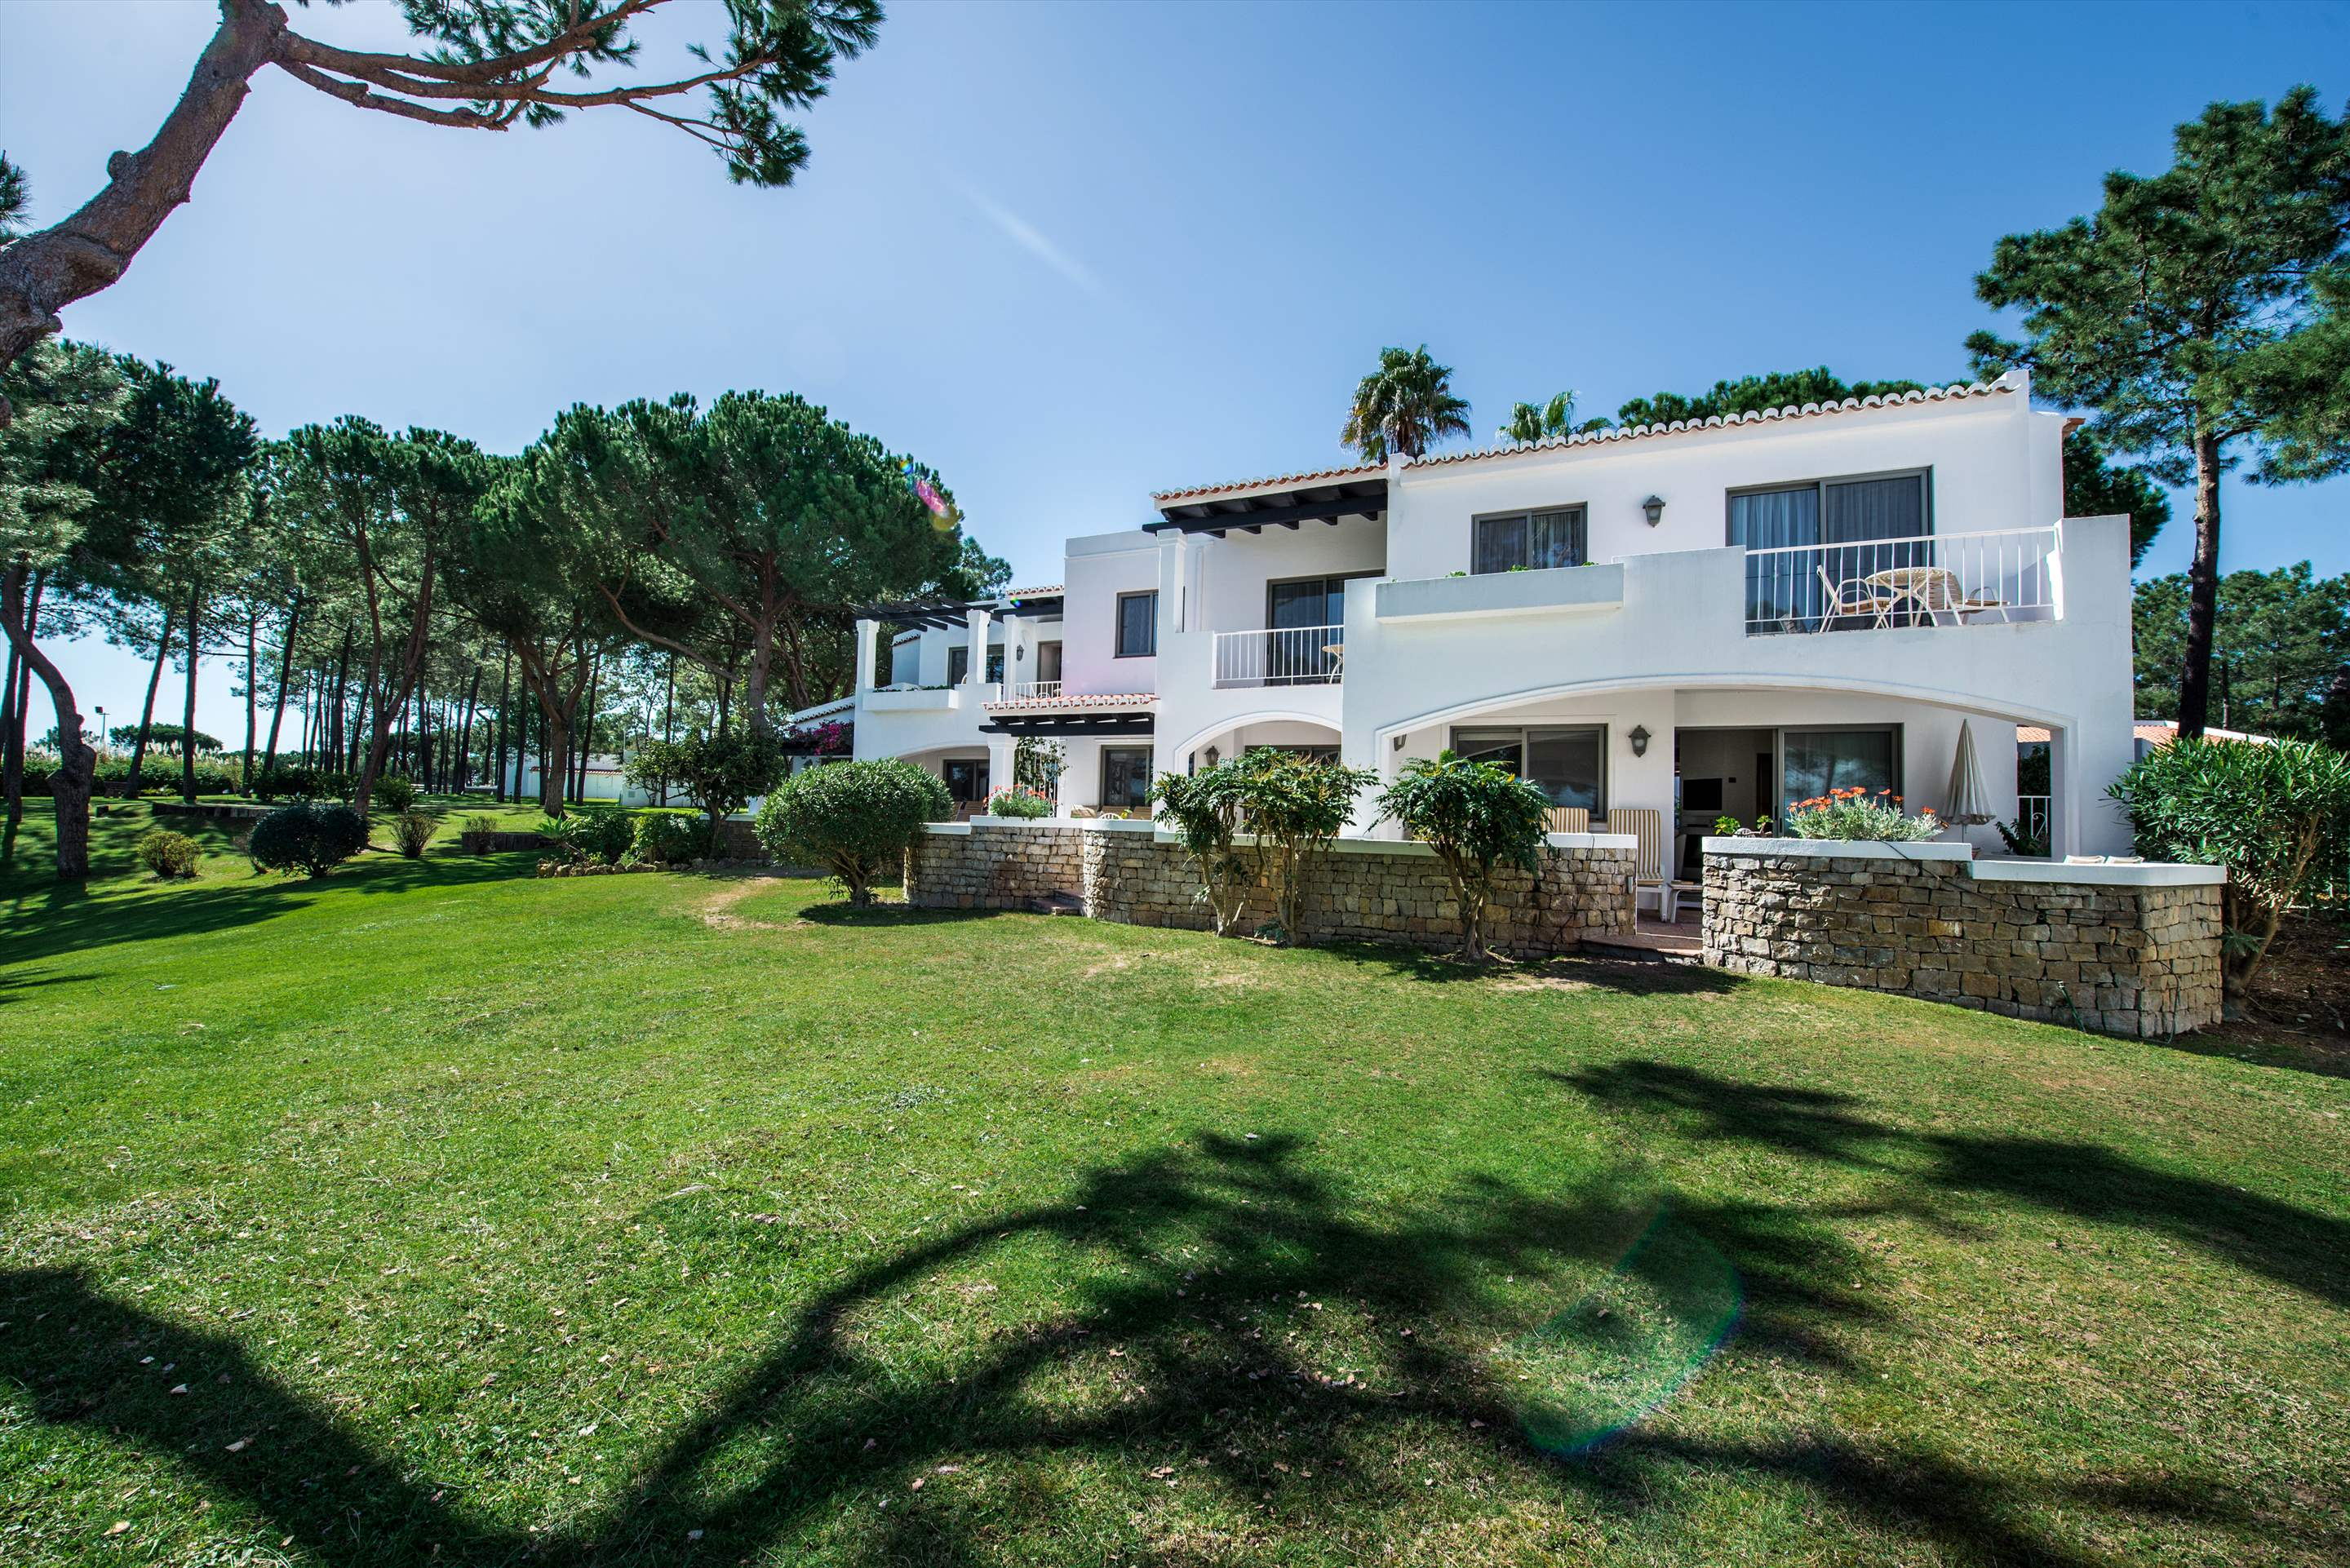 Four Seasons Country Club 1 bed, Superior - Thursday Arrival, 1 bedroom apartment in Four Seasons Country Club, Algarve